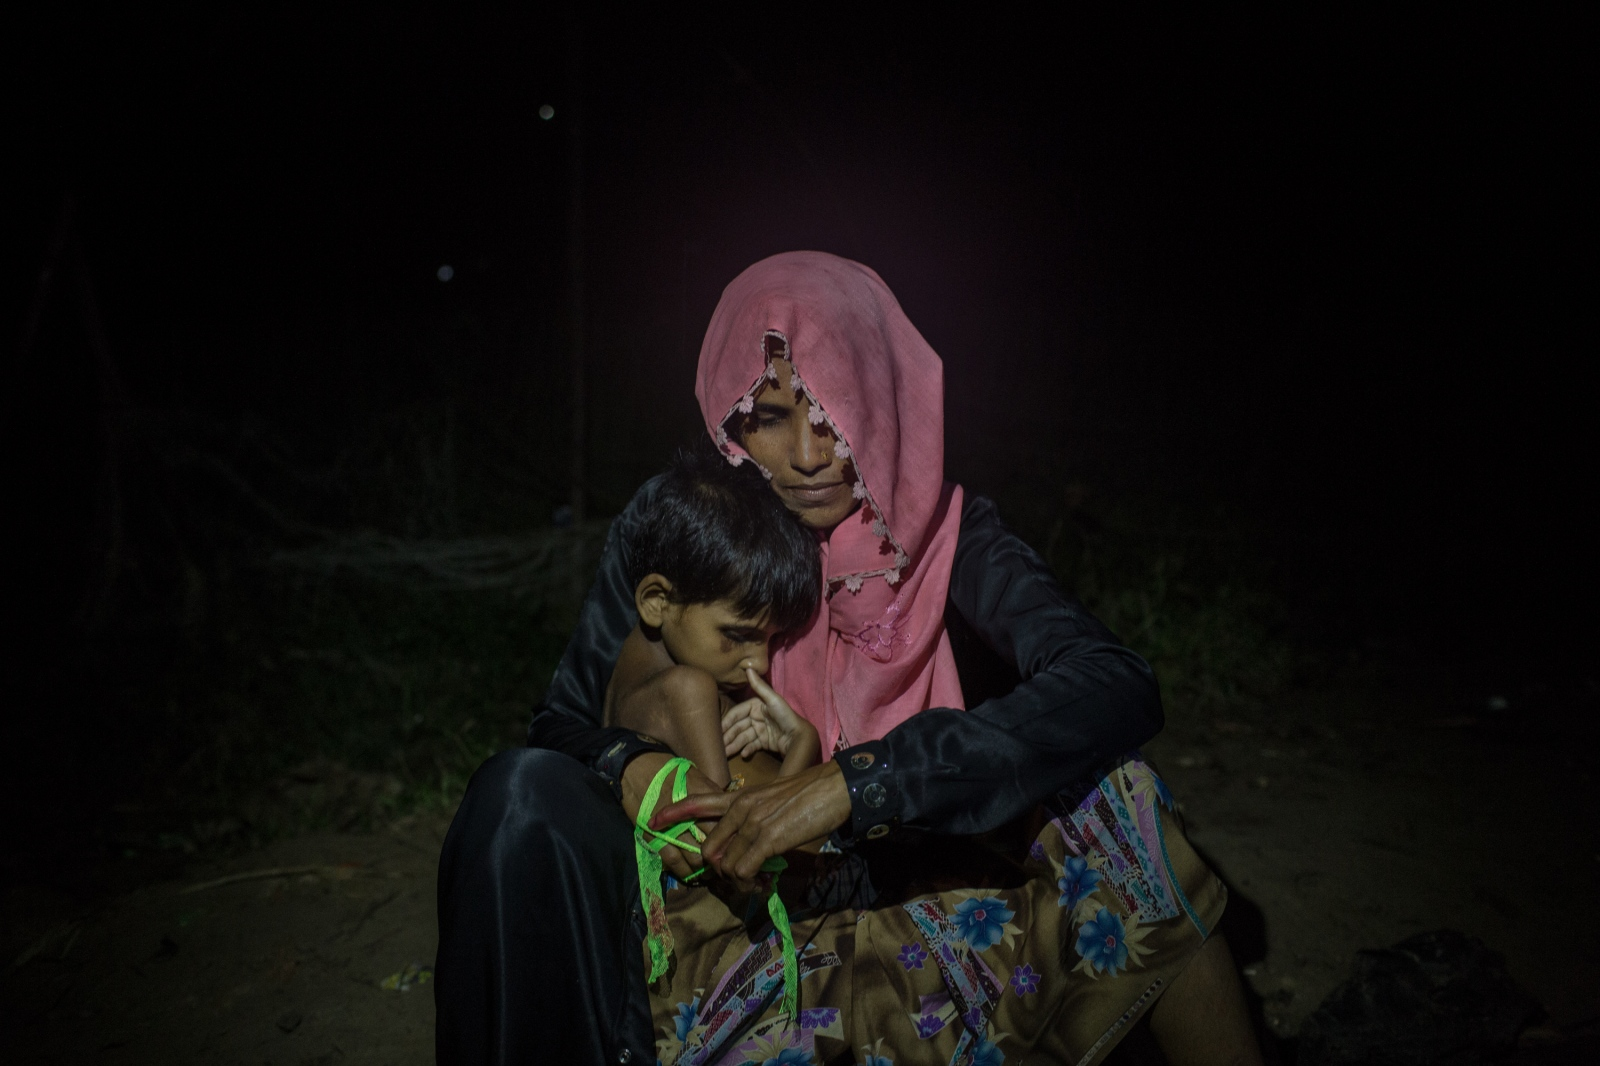 Hasina Begum, 25, waits with her son by the side of the road for food and cash distributions near the Balukhali refugee camp in Bangladesh on Friday September 22, 2017. Hasina does not know where her husband is as they were separated after crossing the border in to Bangladesh.